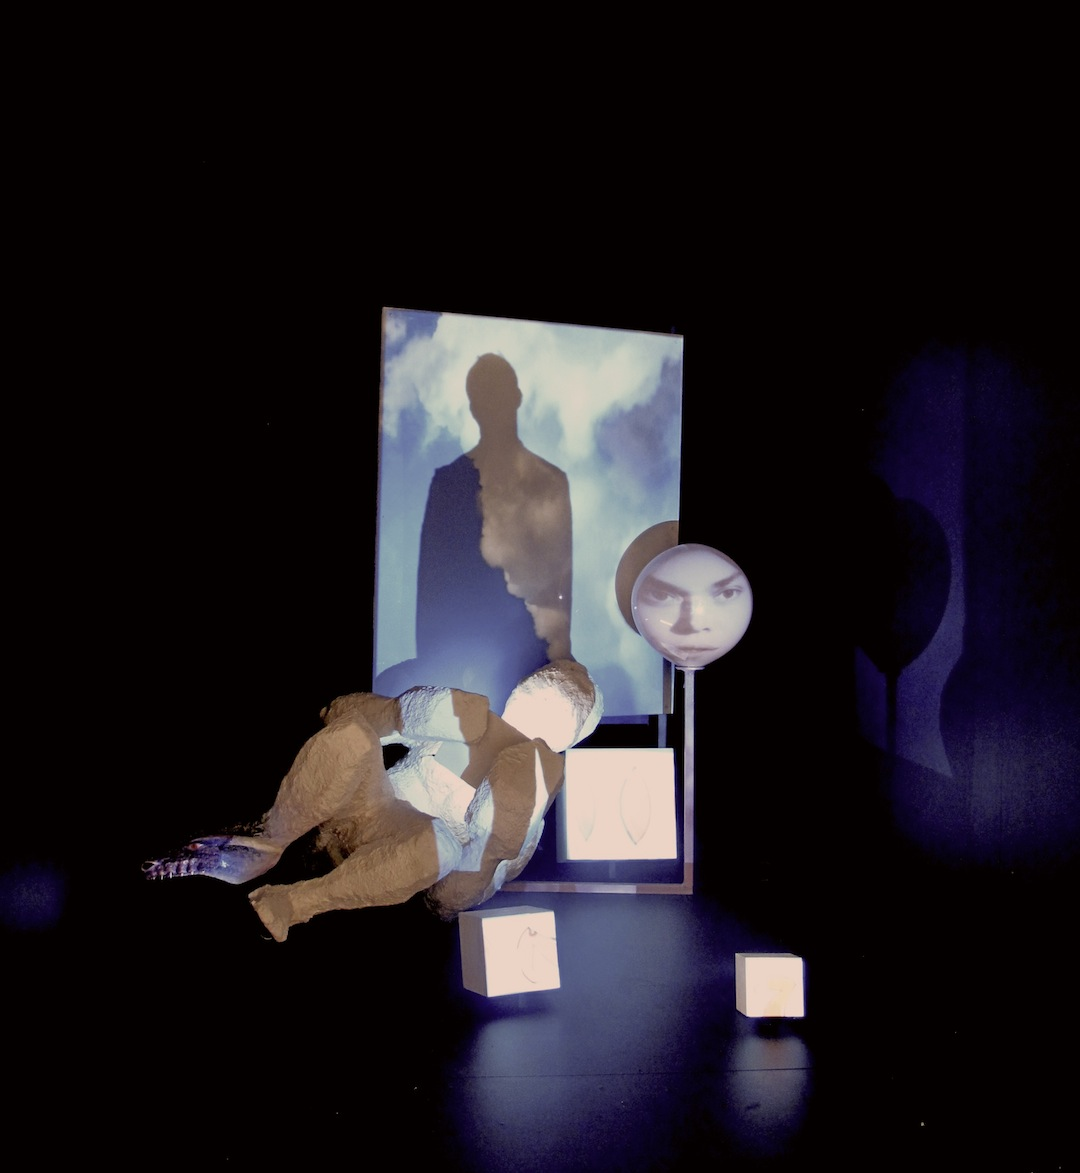 Tony Oursler, Aitia, 2013, Video projection, mixed media, sound, 67 x 71 x 67 inches